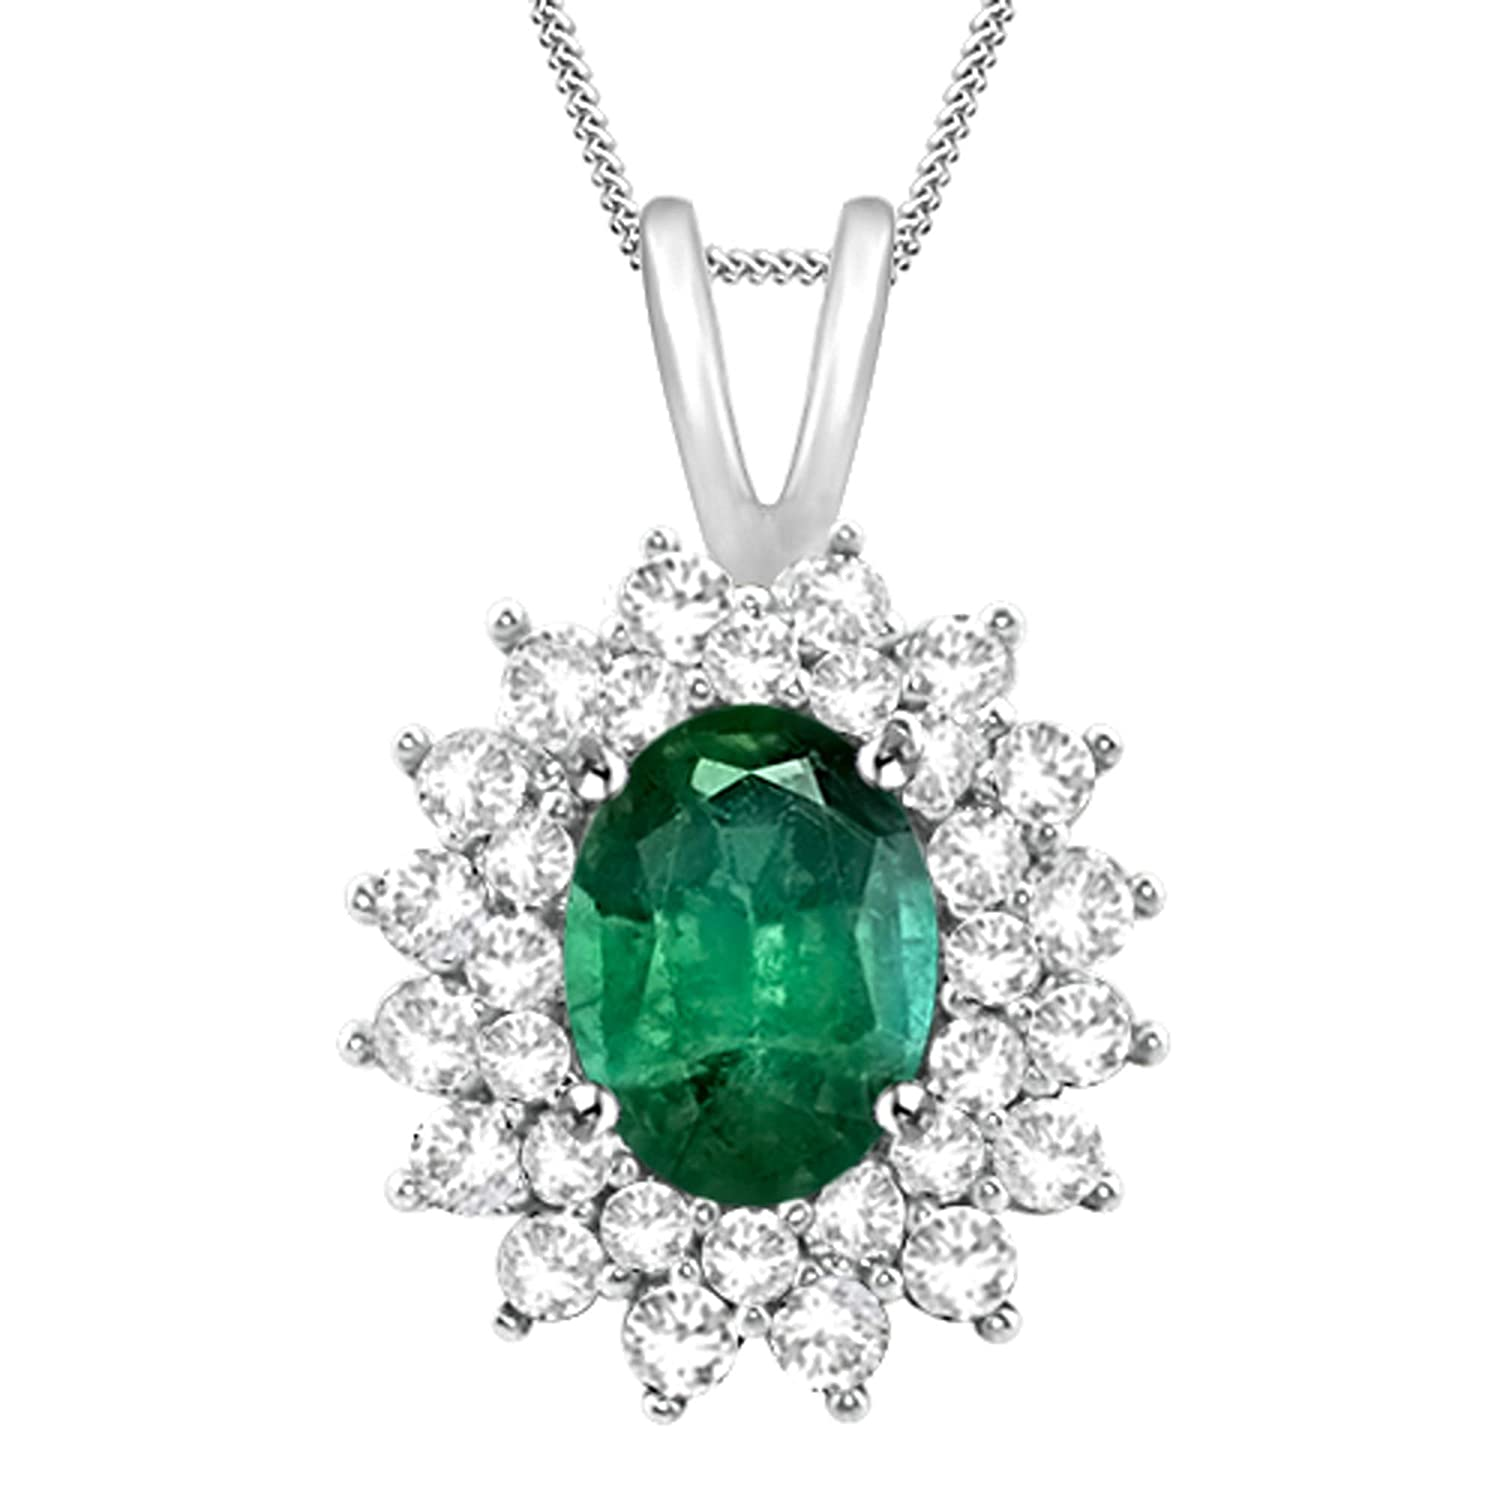 18 inch Diamond Scotch Simulated Green Emerald Double Halo Cluster Flower Pendant Necklace for Women Girl Teens